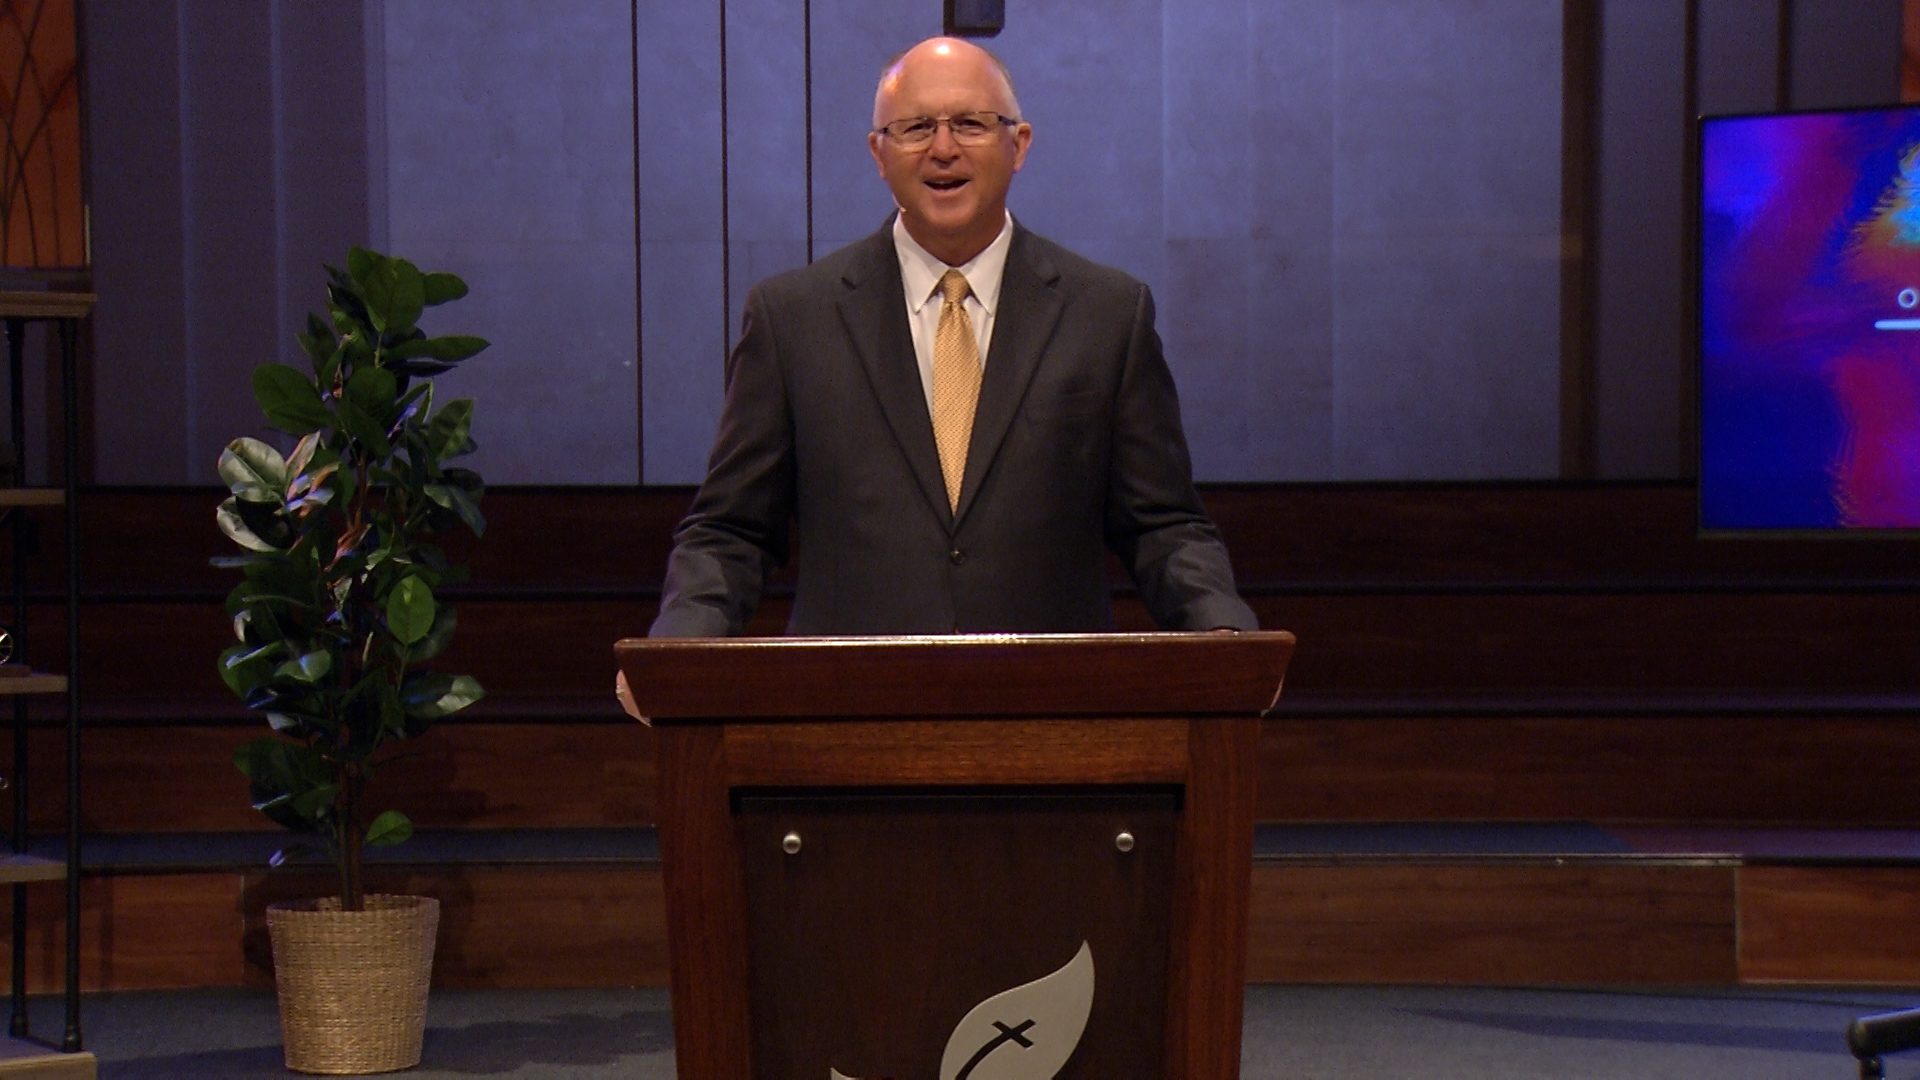 Pastor Paul Chappell: Only Jesus Is the Light of the World